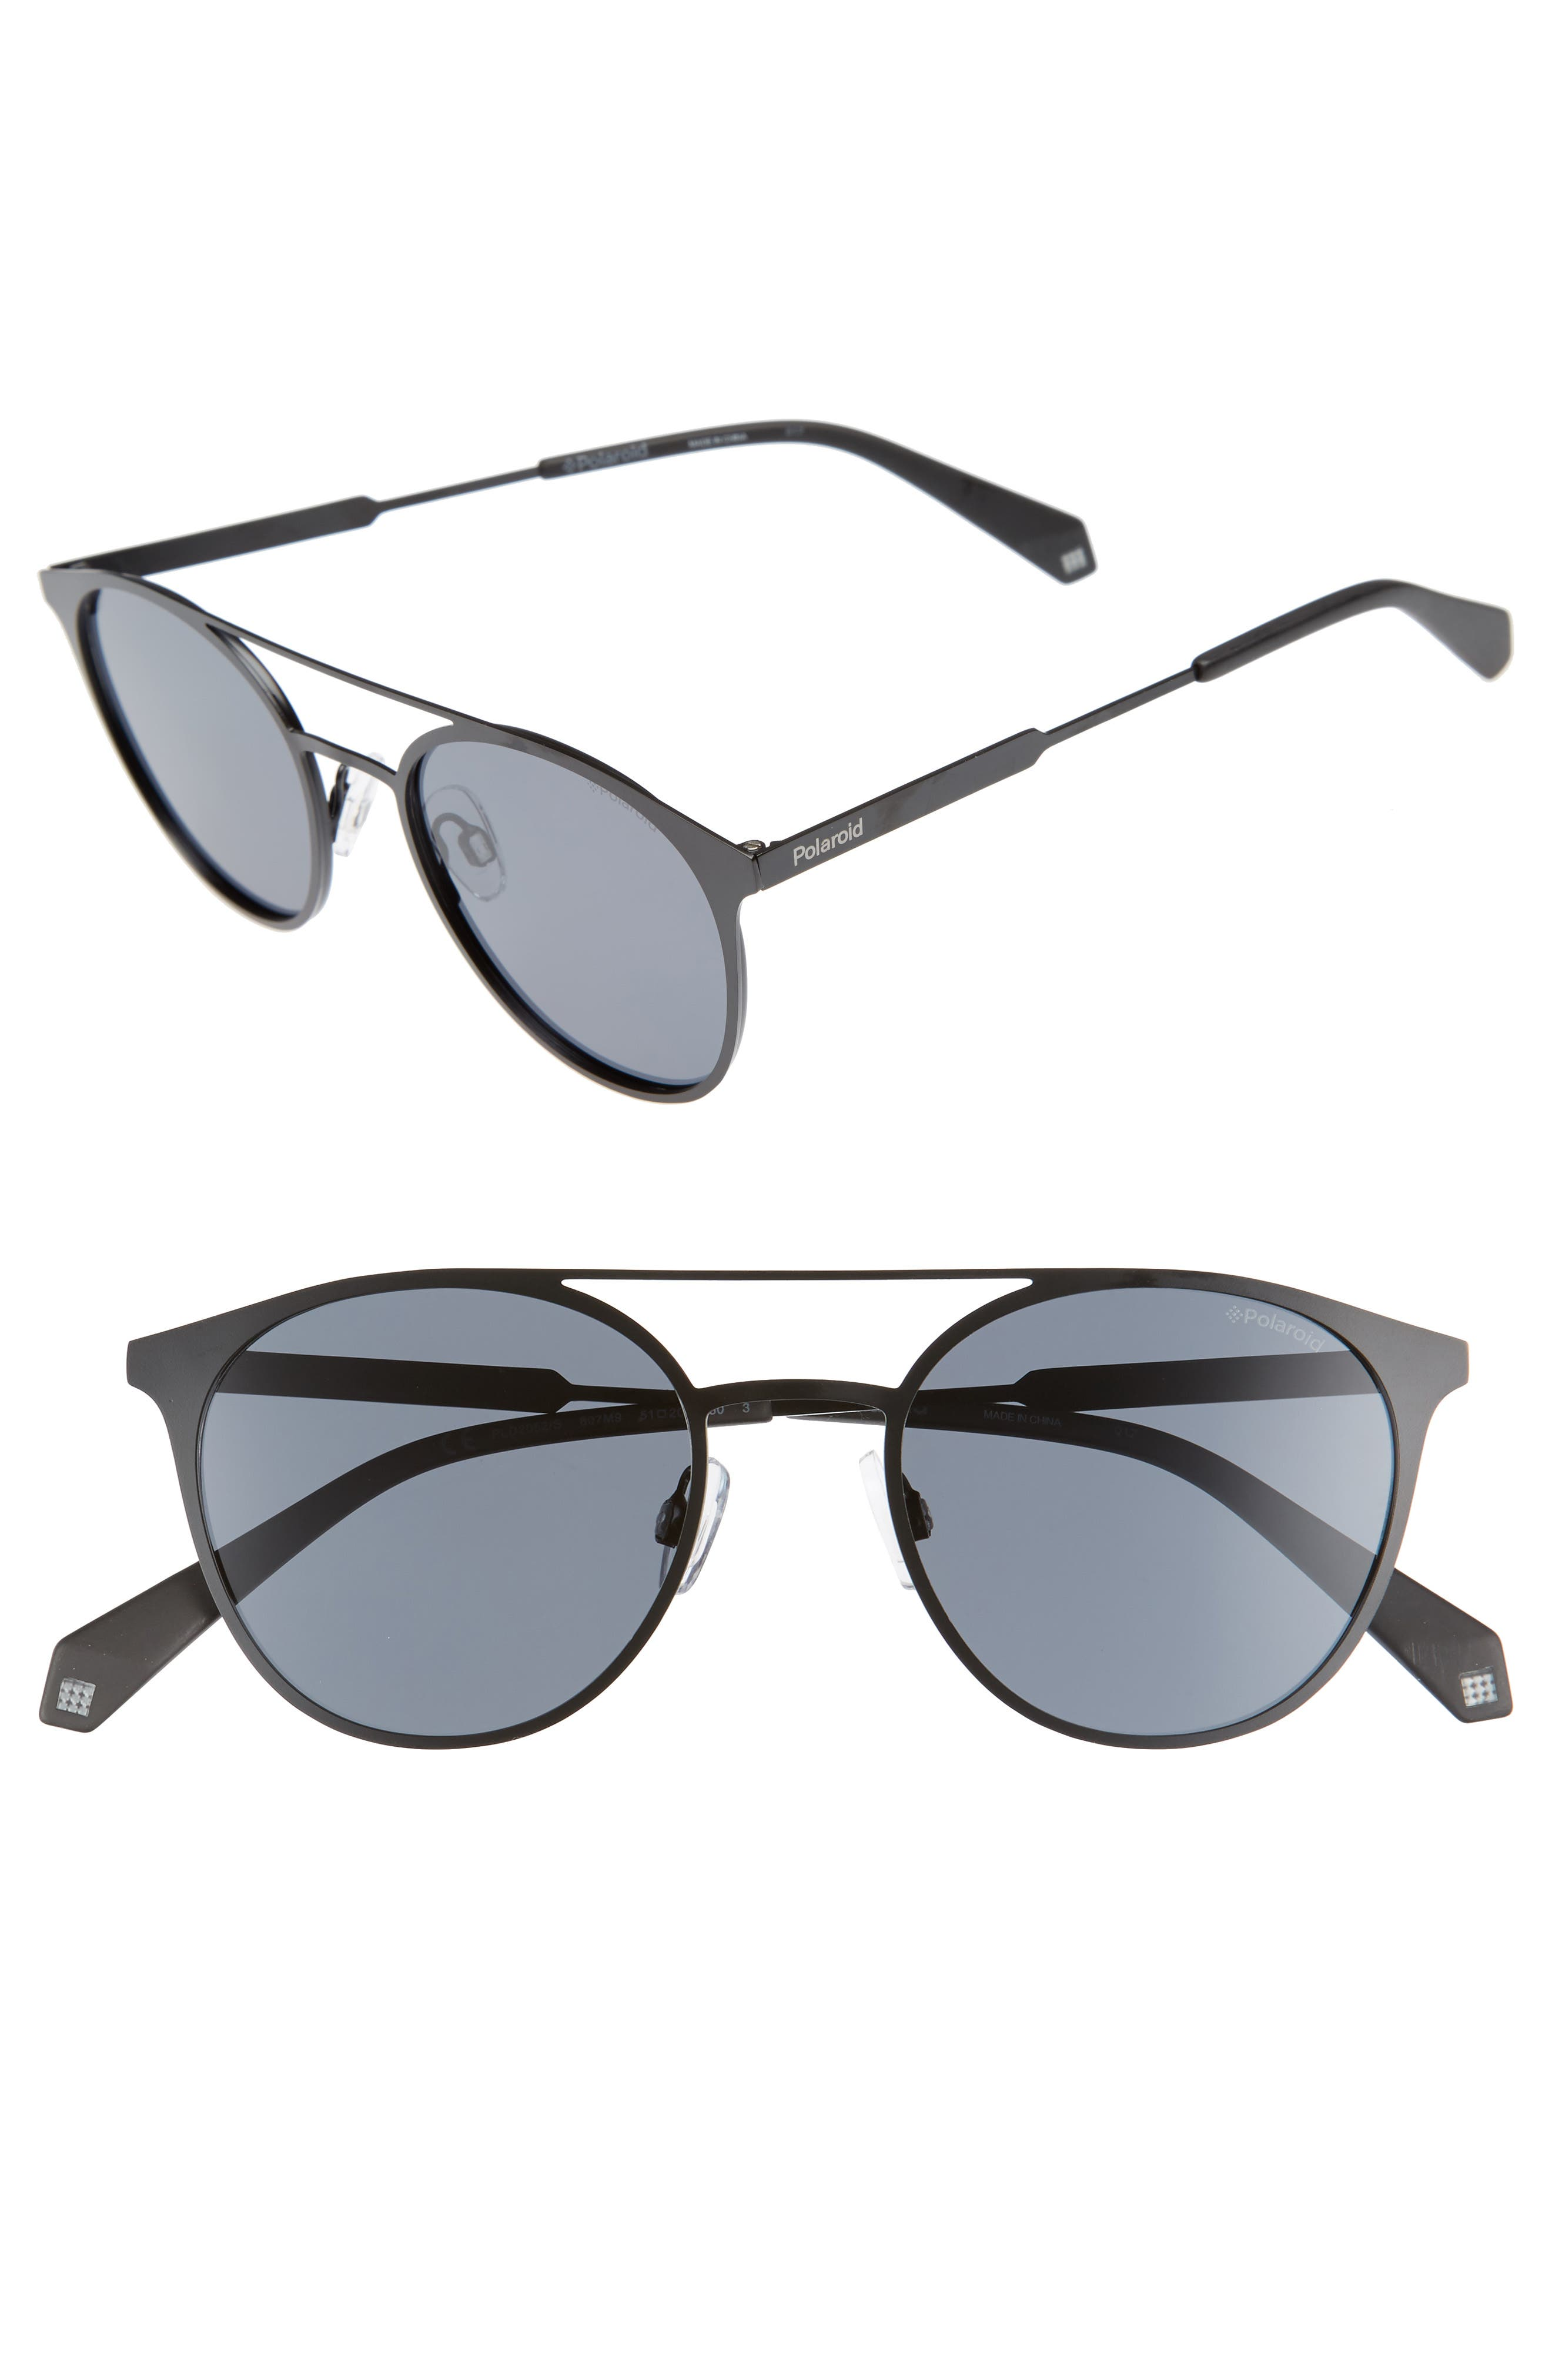 51mm Polarized Round Stainless Steel Sunglasses,                         Main,                         color, 002